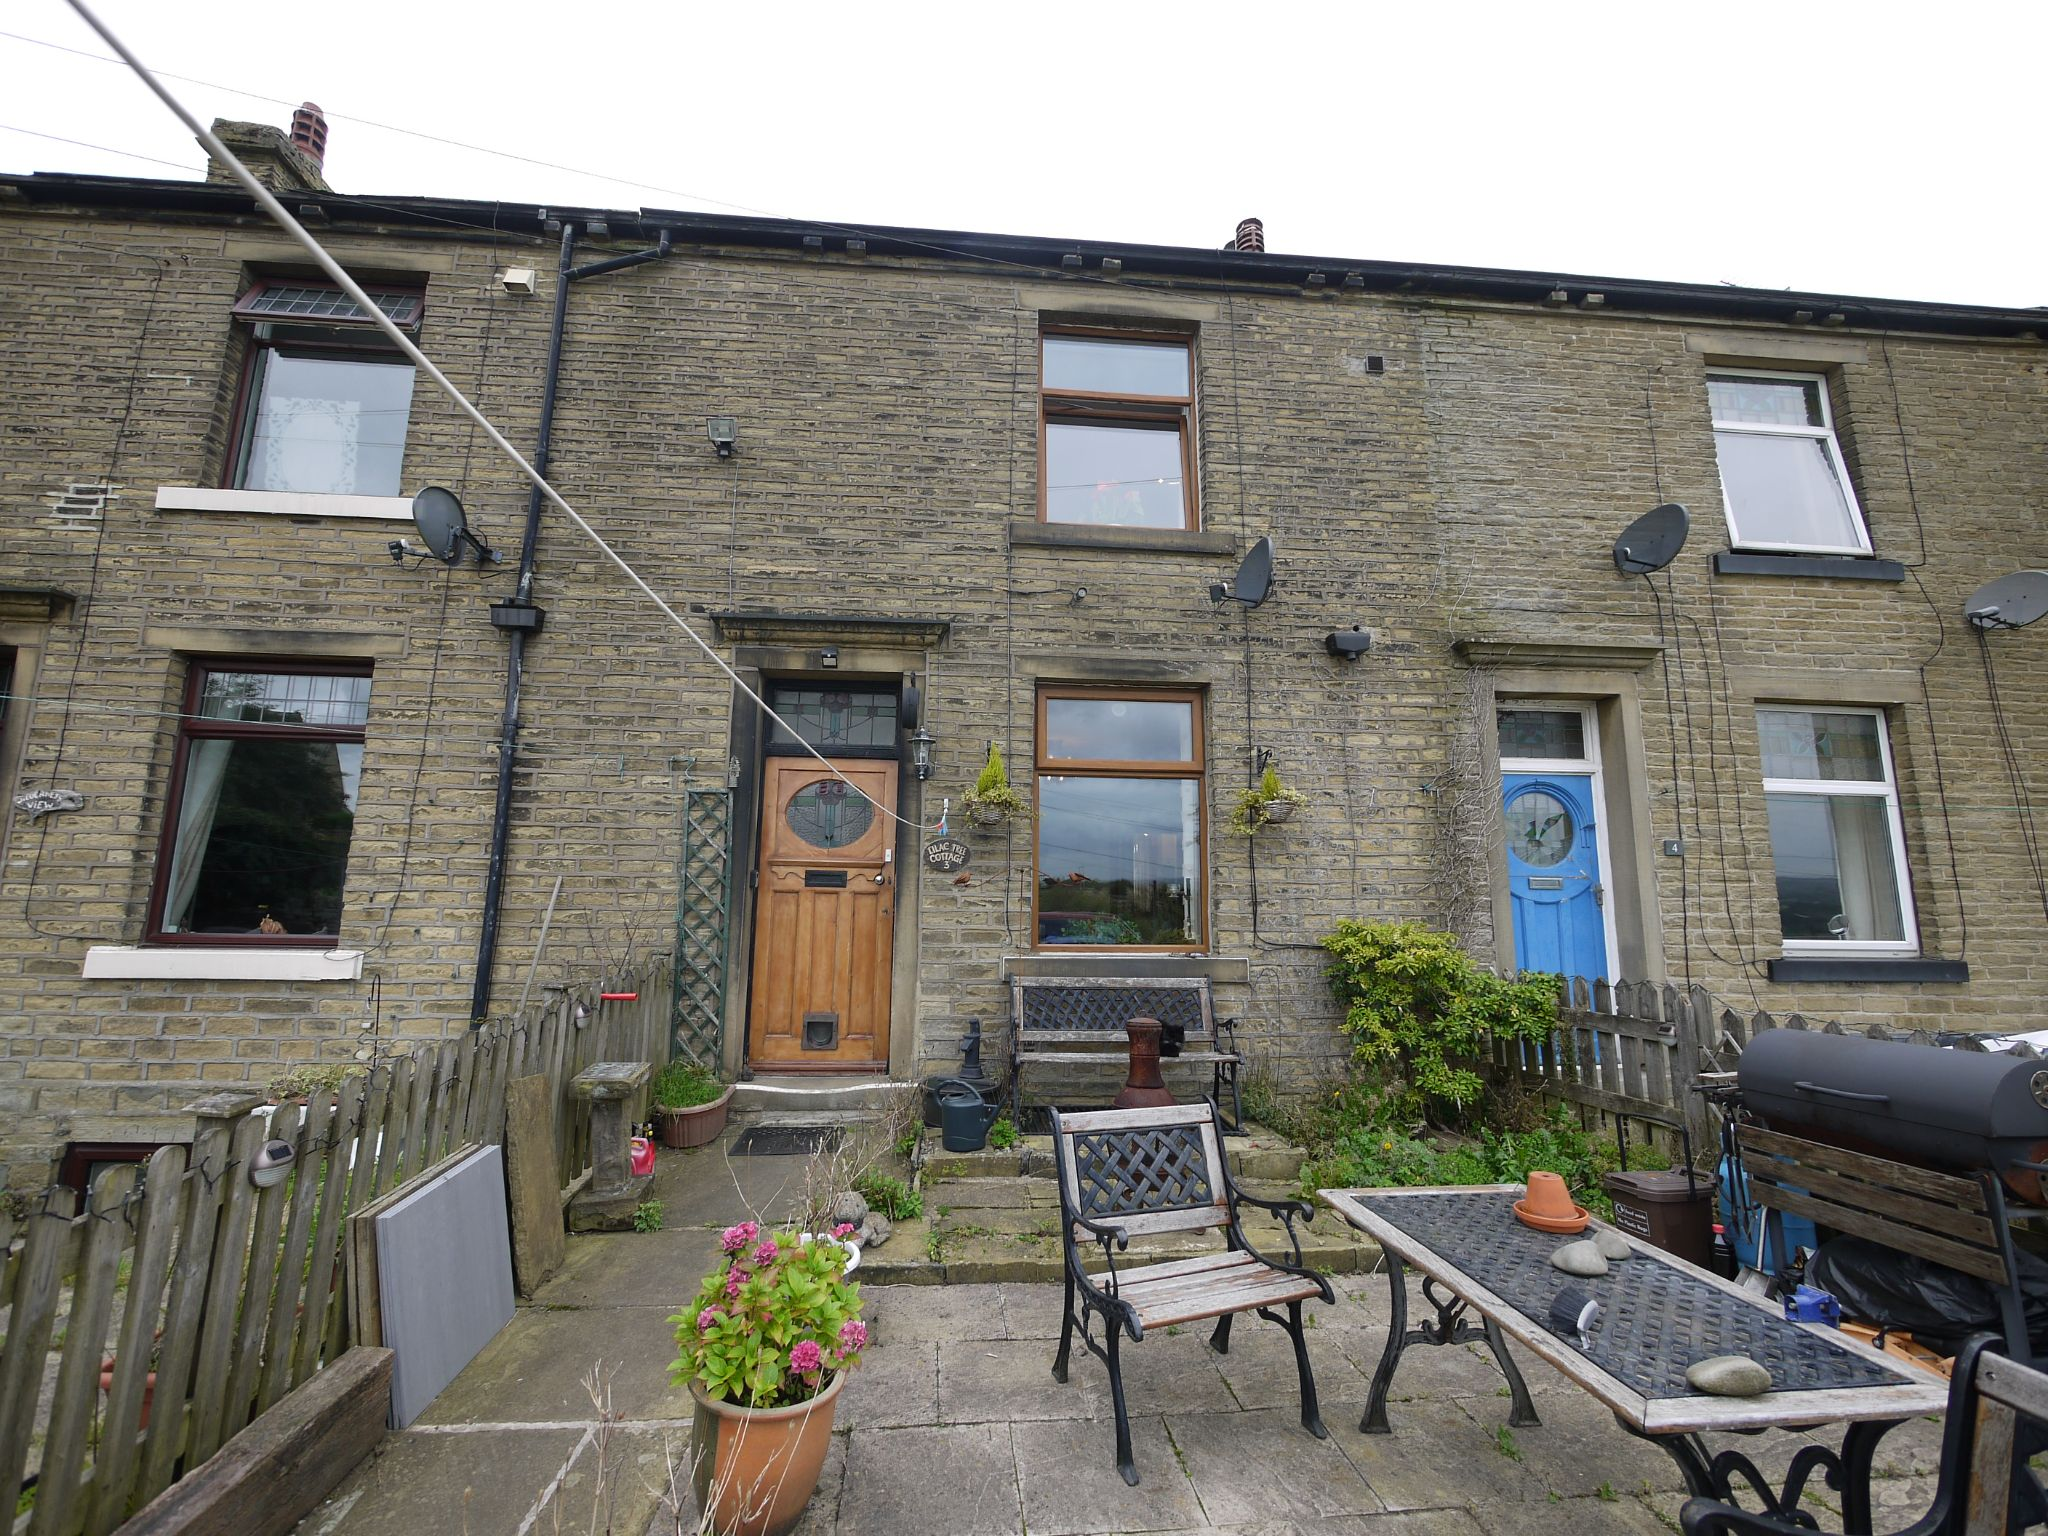 1 bedroom mid terraced house For Sale in Elland - Main.